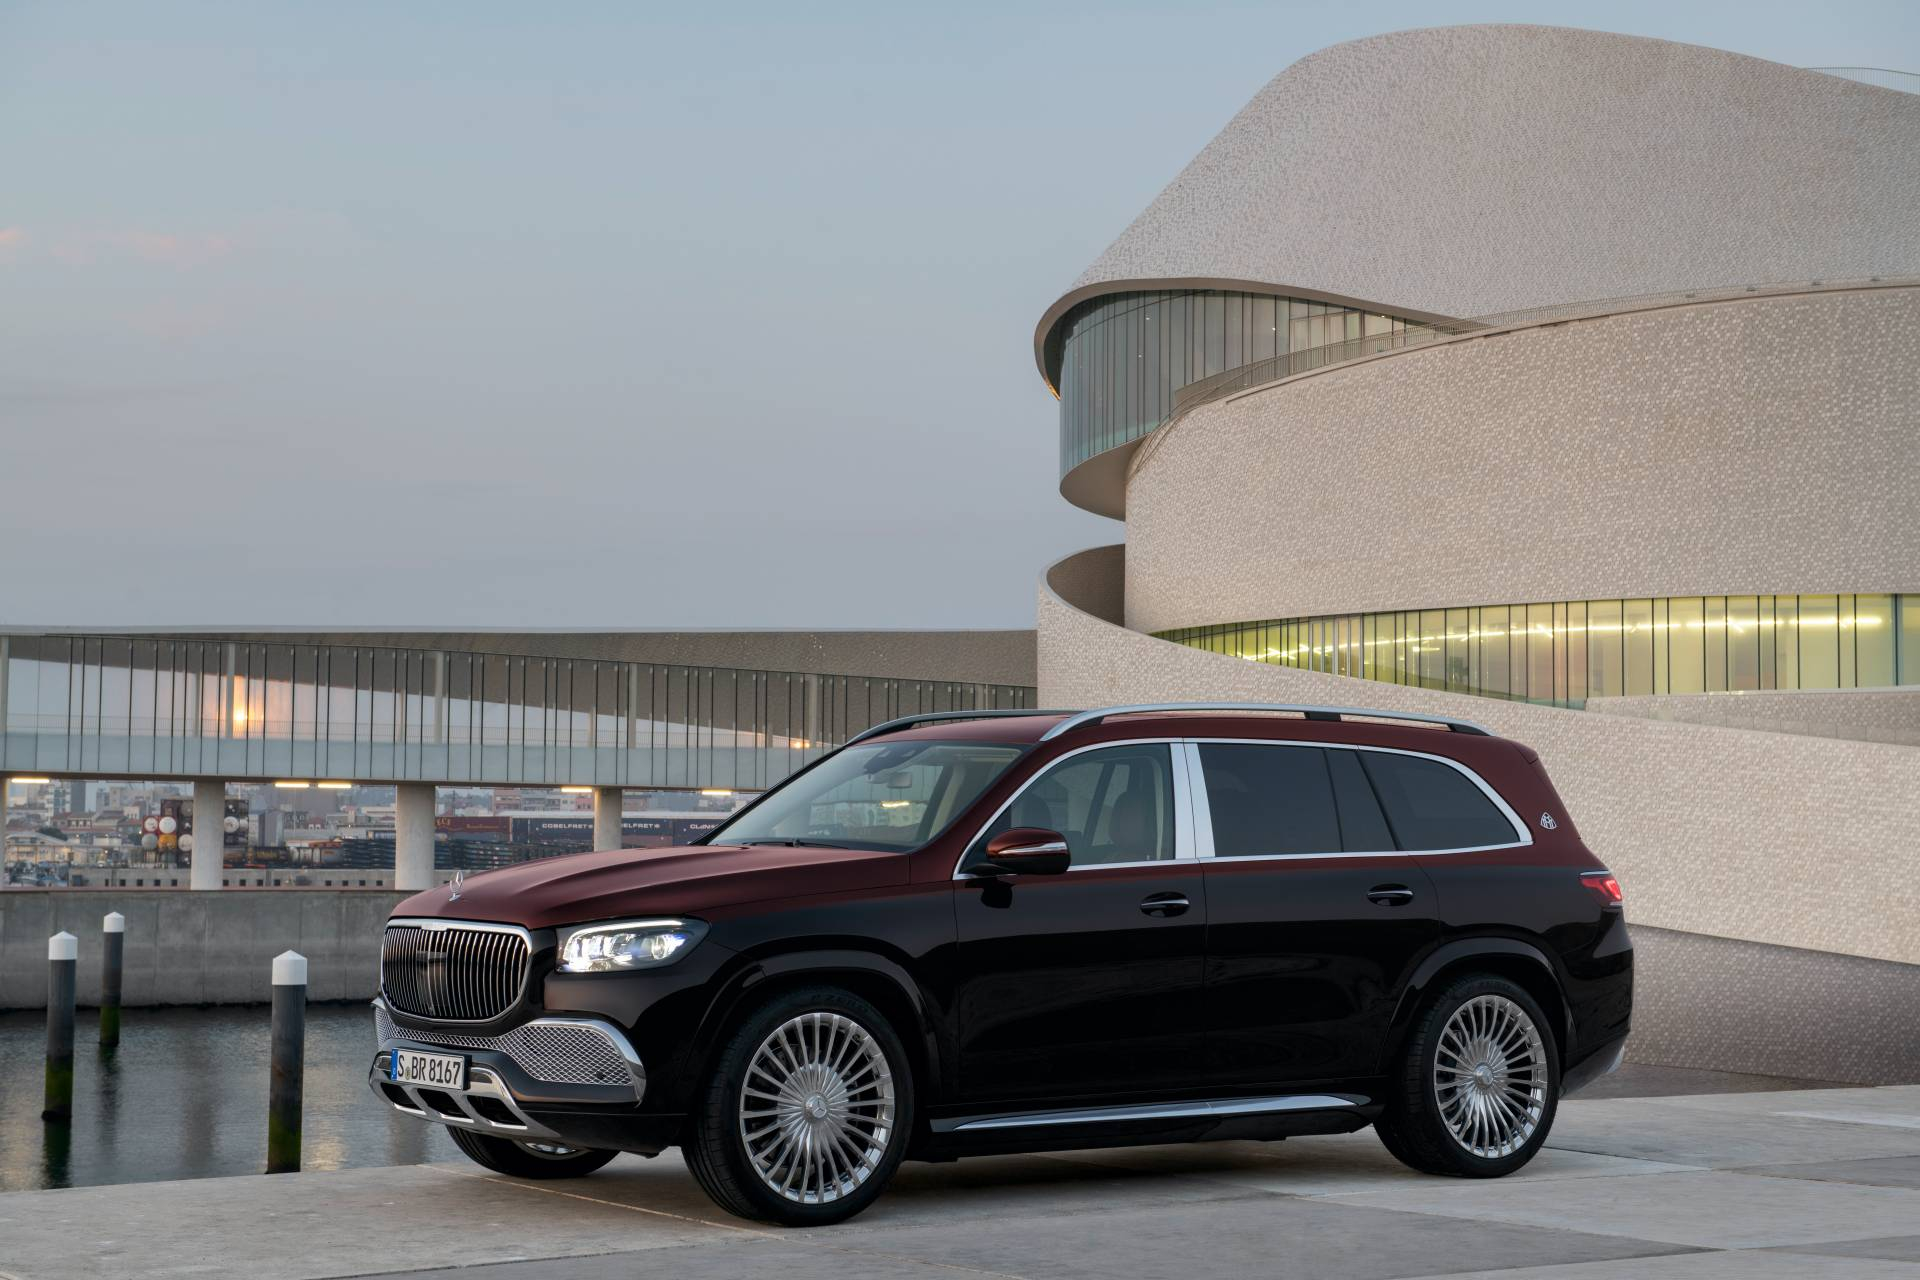 2021 Mercedes-Maybach Gls 600 Debuts As The Ultimate S-Class New 2022 Buick Envision Brochure, Build, Running Boards